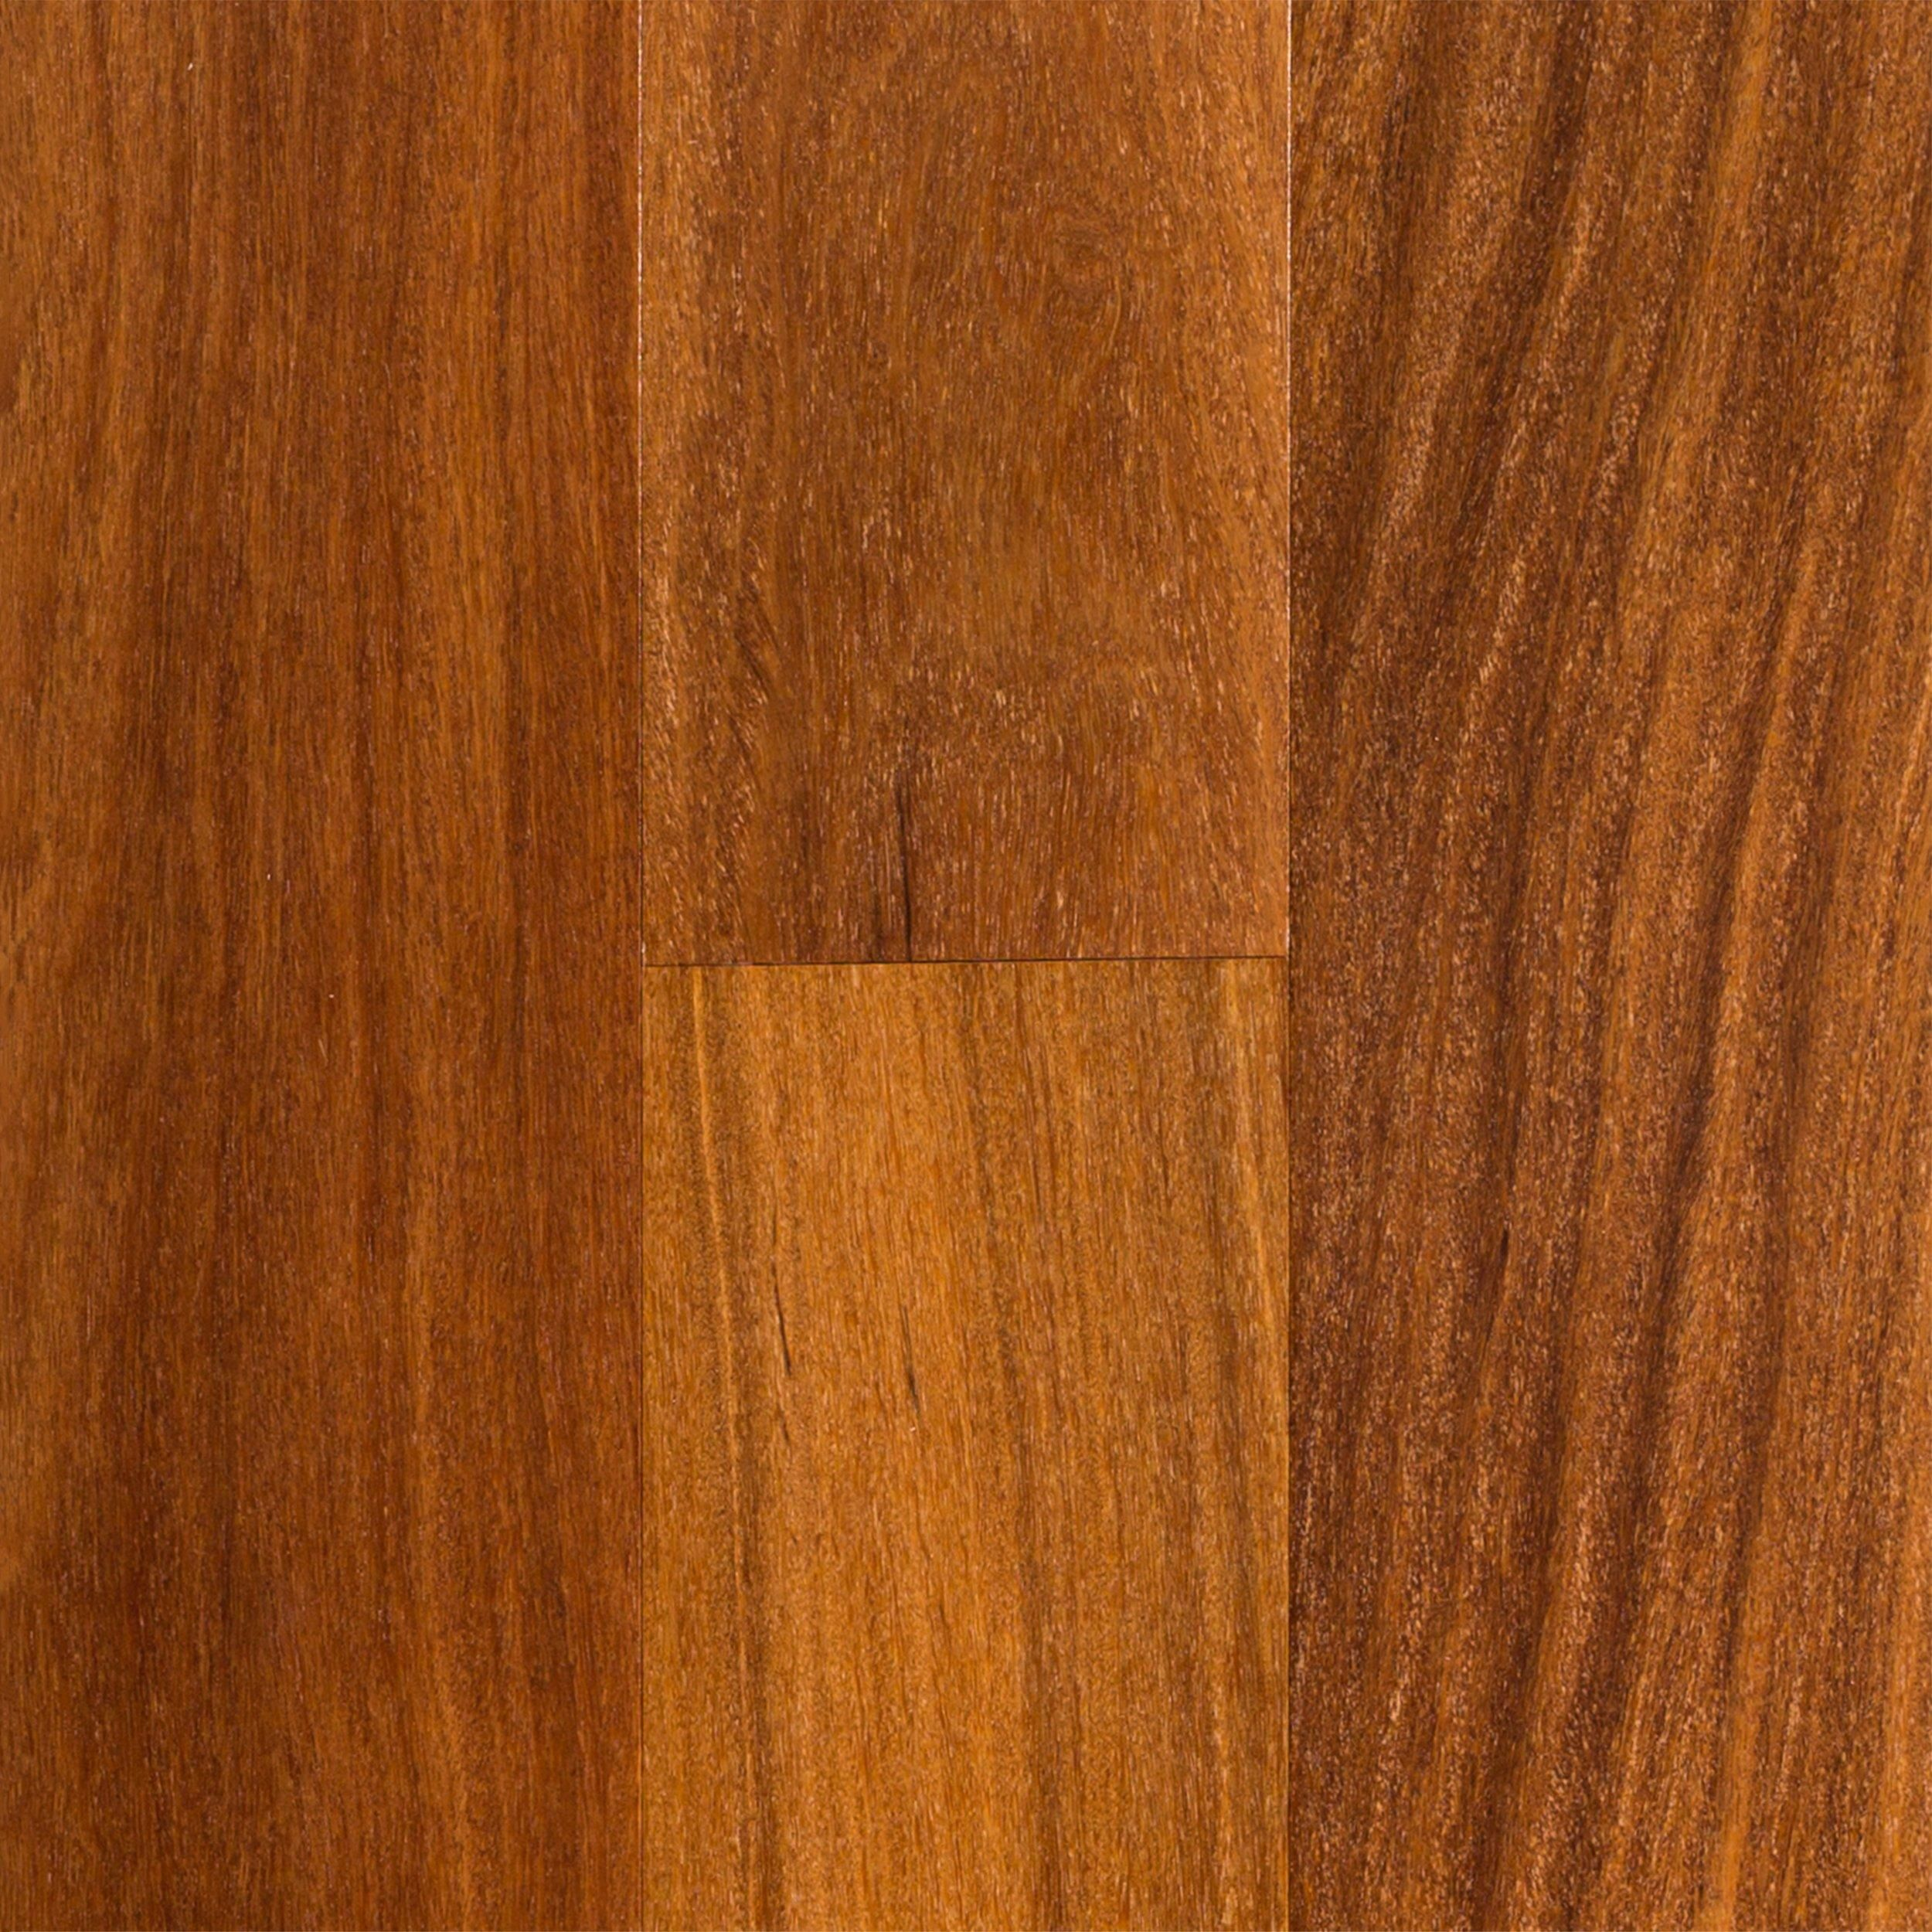 Brazilian Teak Engineered Hardwood Floor Decor In 2020 Engineered Hardwood Flooring Hardwood